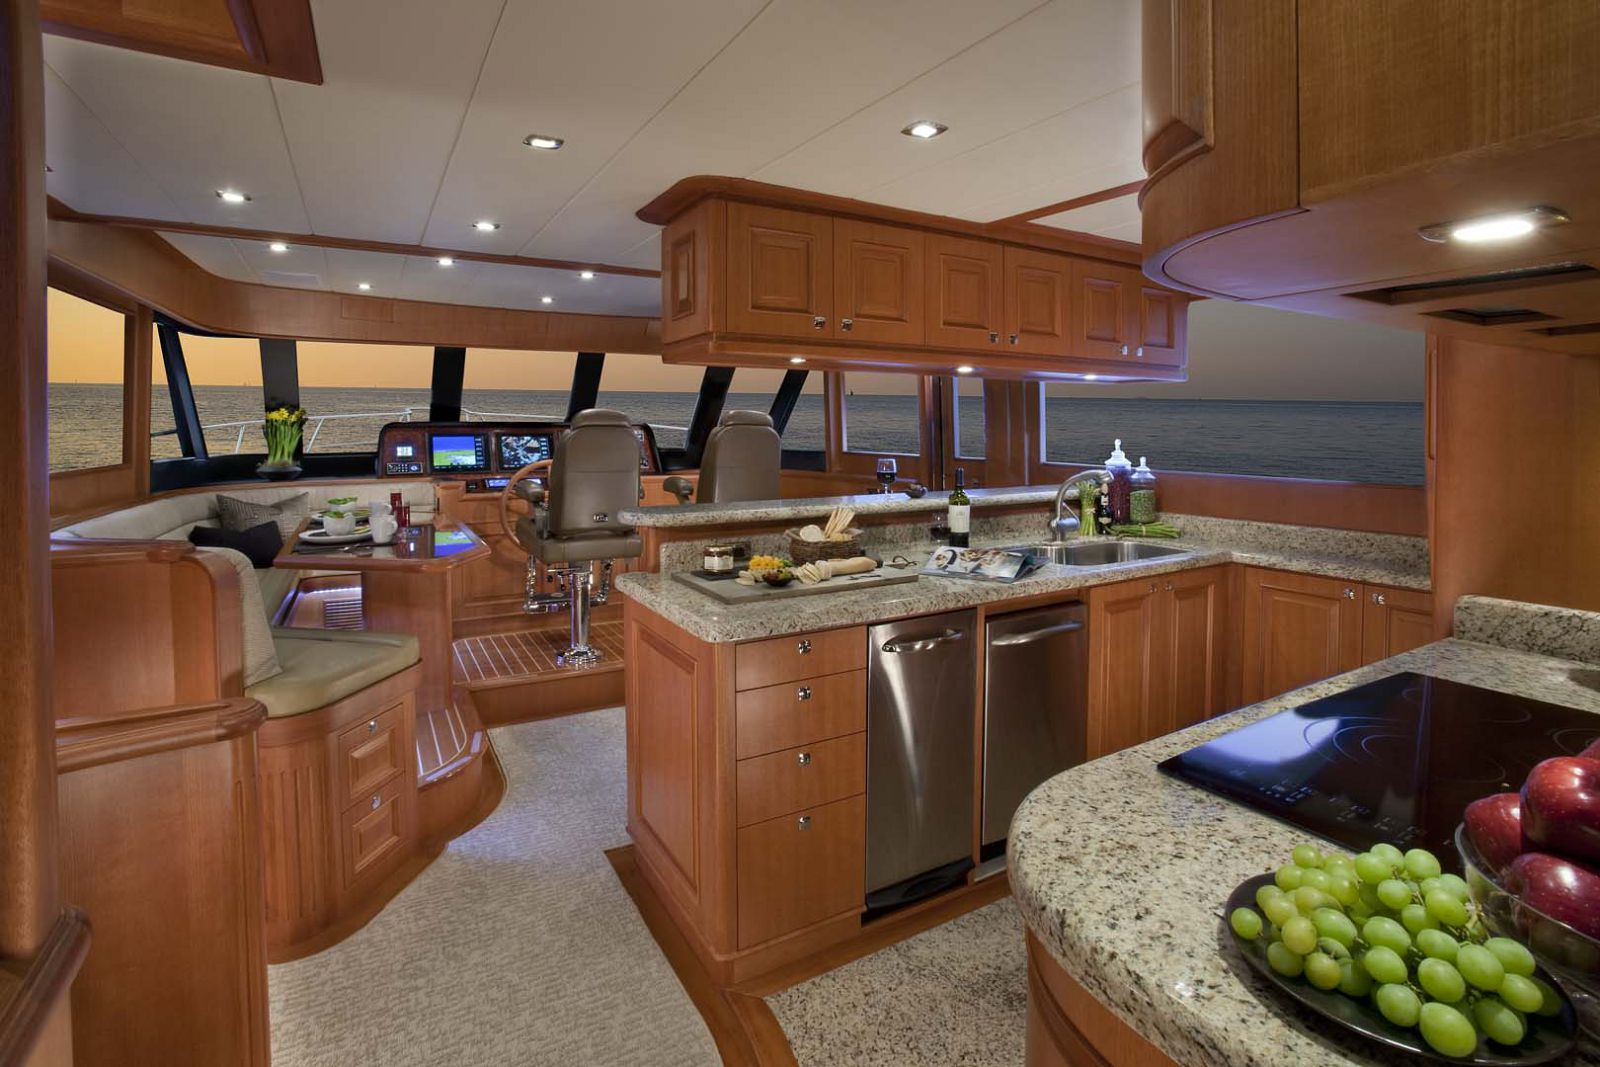 country kitchen on hampton endurance yacht 658